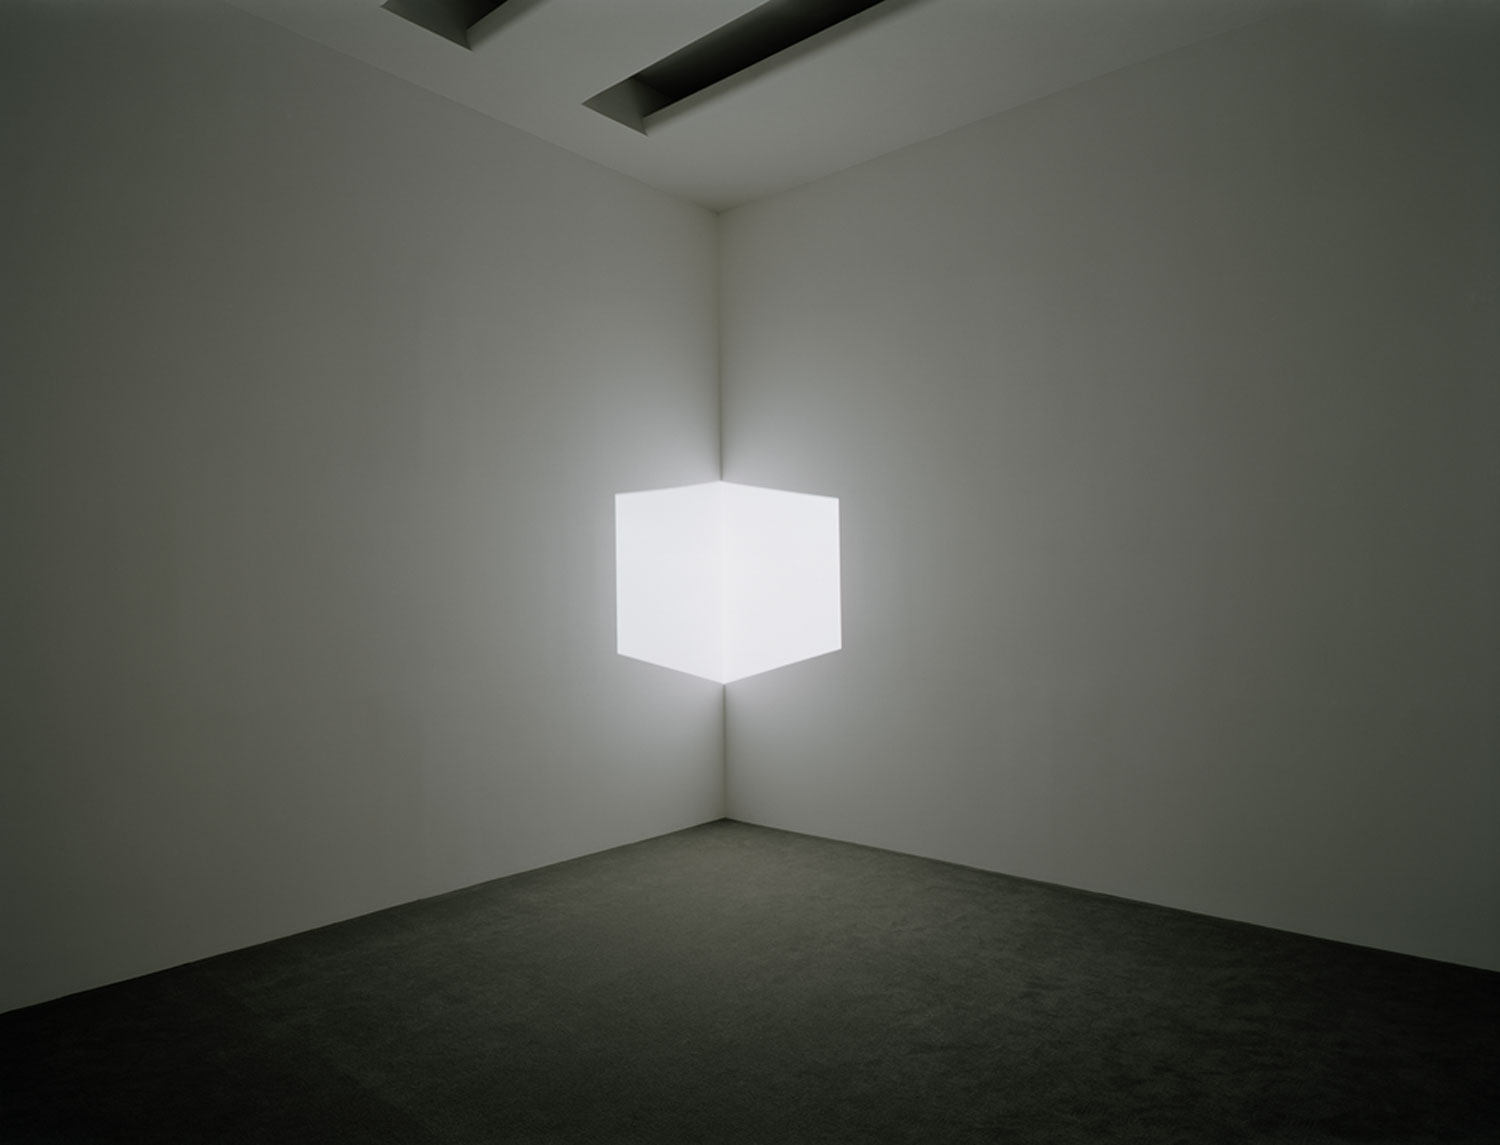 James Turrell Afrum I (White), 1967 Projected light, dimensions variable Solomon R. Guggenheim Museum, New York, Panza Collection, Gift 92.4175 © James Turrell Installation view: Singular Forms (sometimes repeated), Solomon R. Guggenheim Museum, New York, March 5–May 19, 2004. Photo: David Heald © Solomon R. Guggenheim Foundation, New York